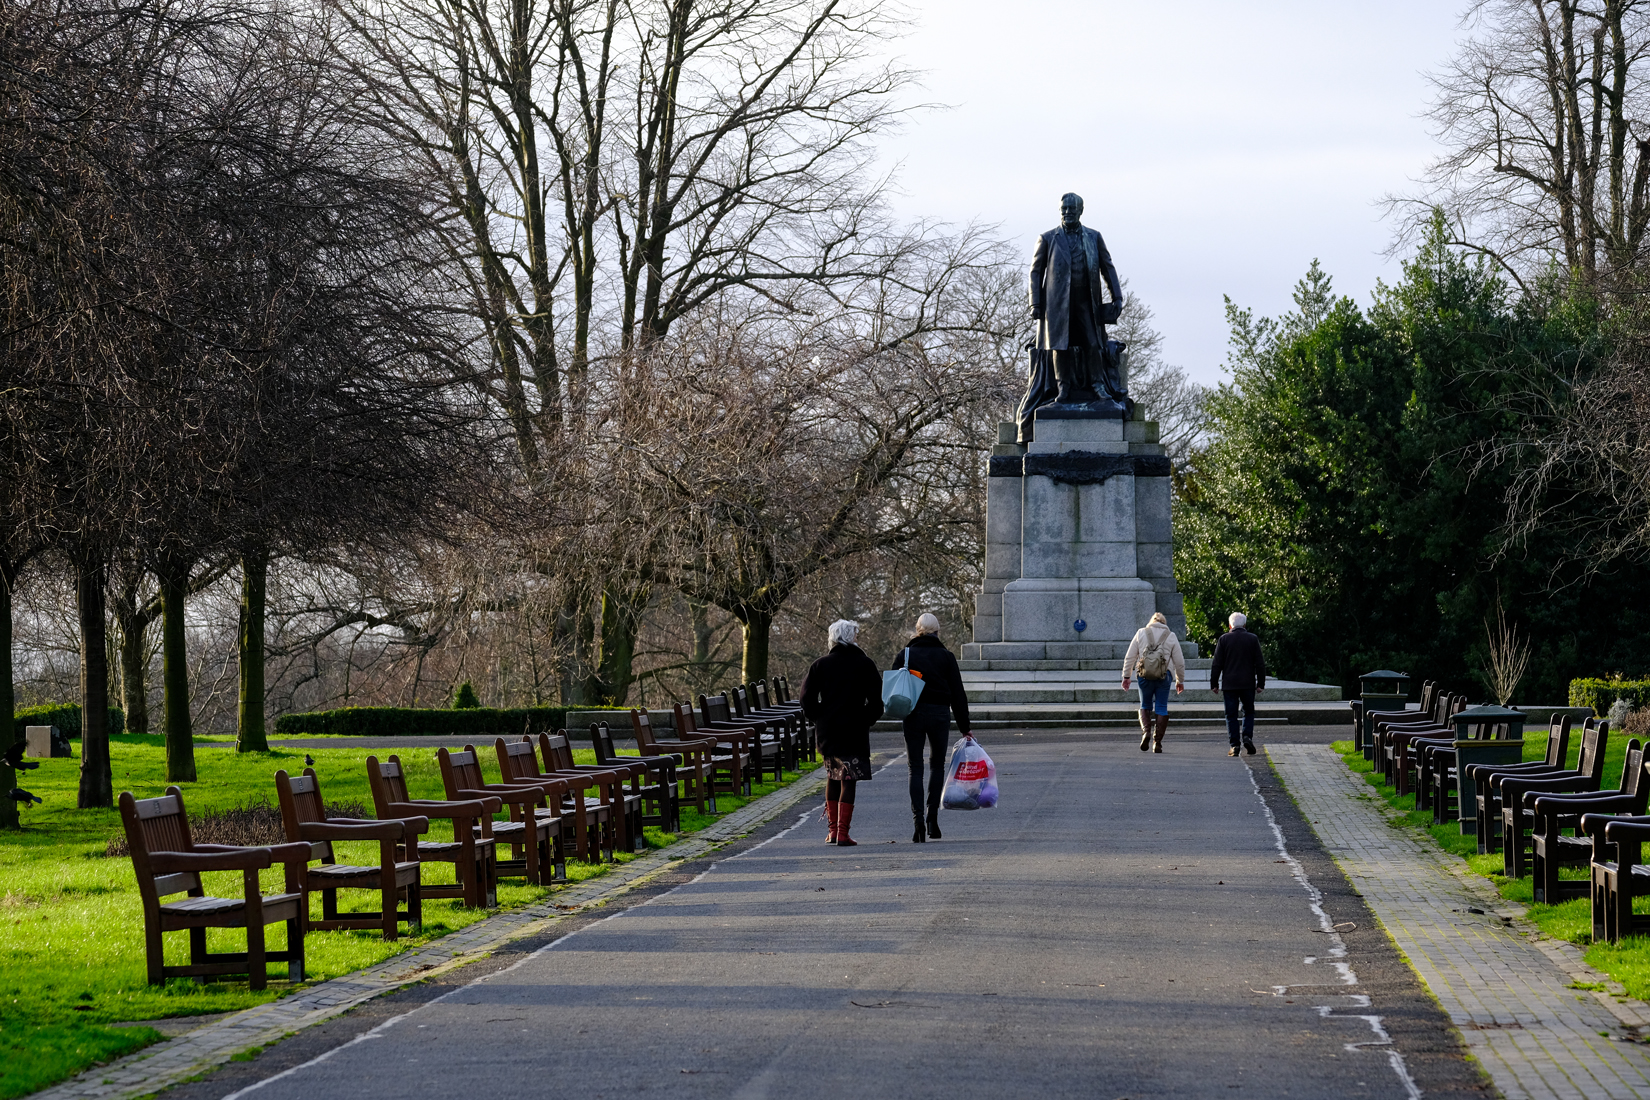 Pathway with multiple wooden benches on either side. Four people on the path and heading towards statue at end of path with large metal cast of male standing atop stone plinth.